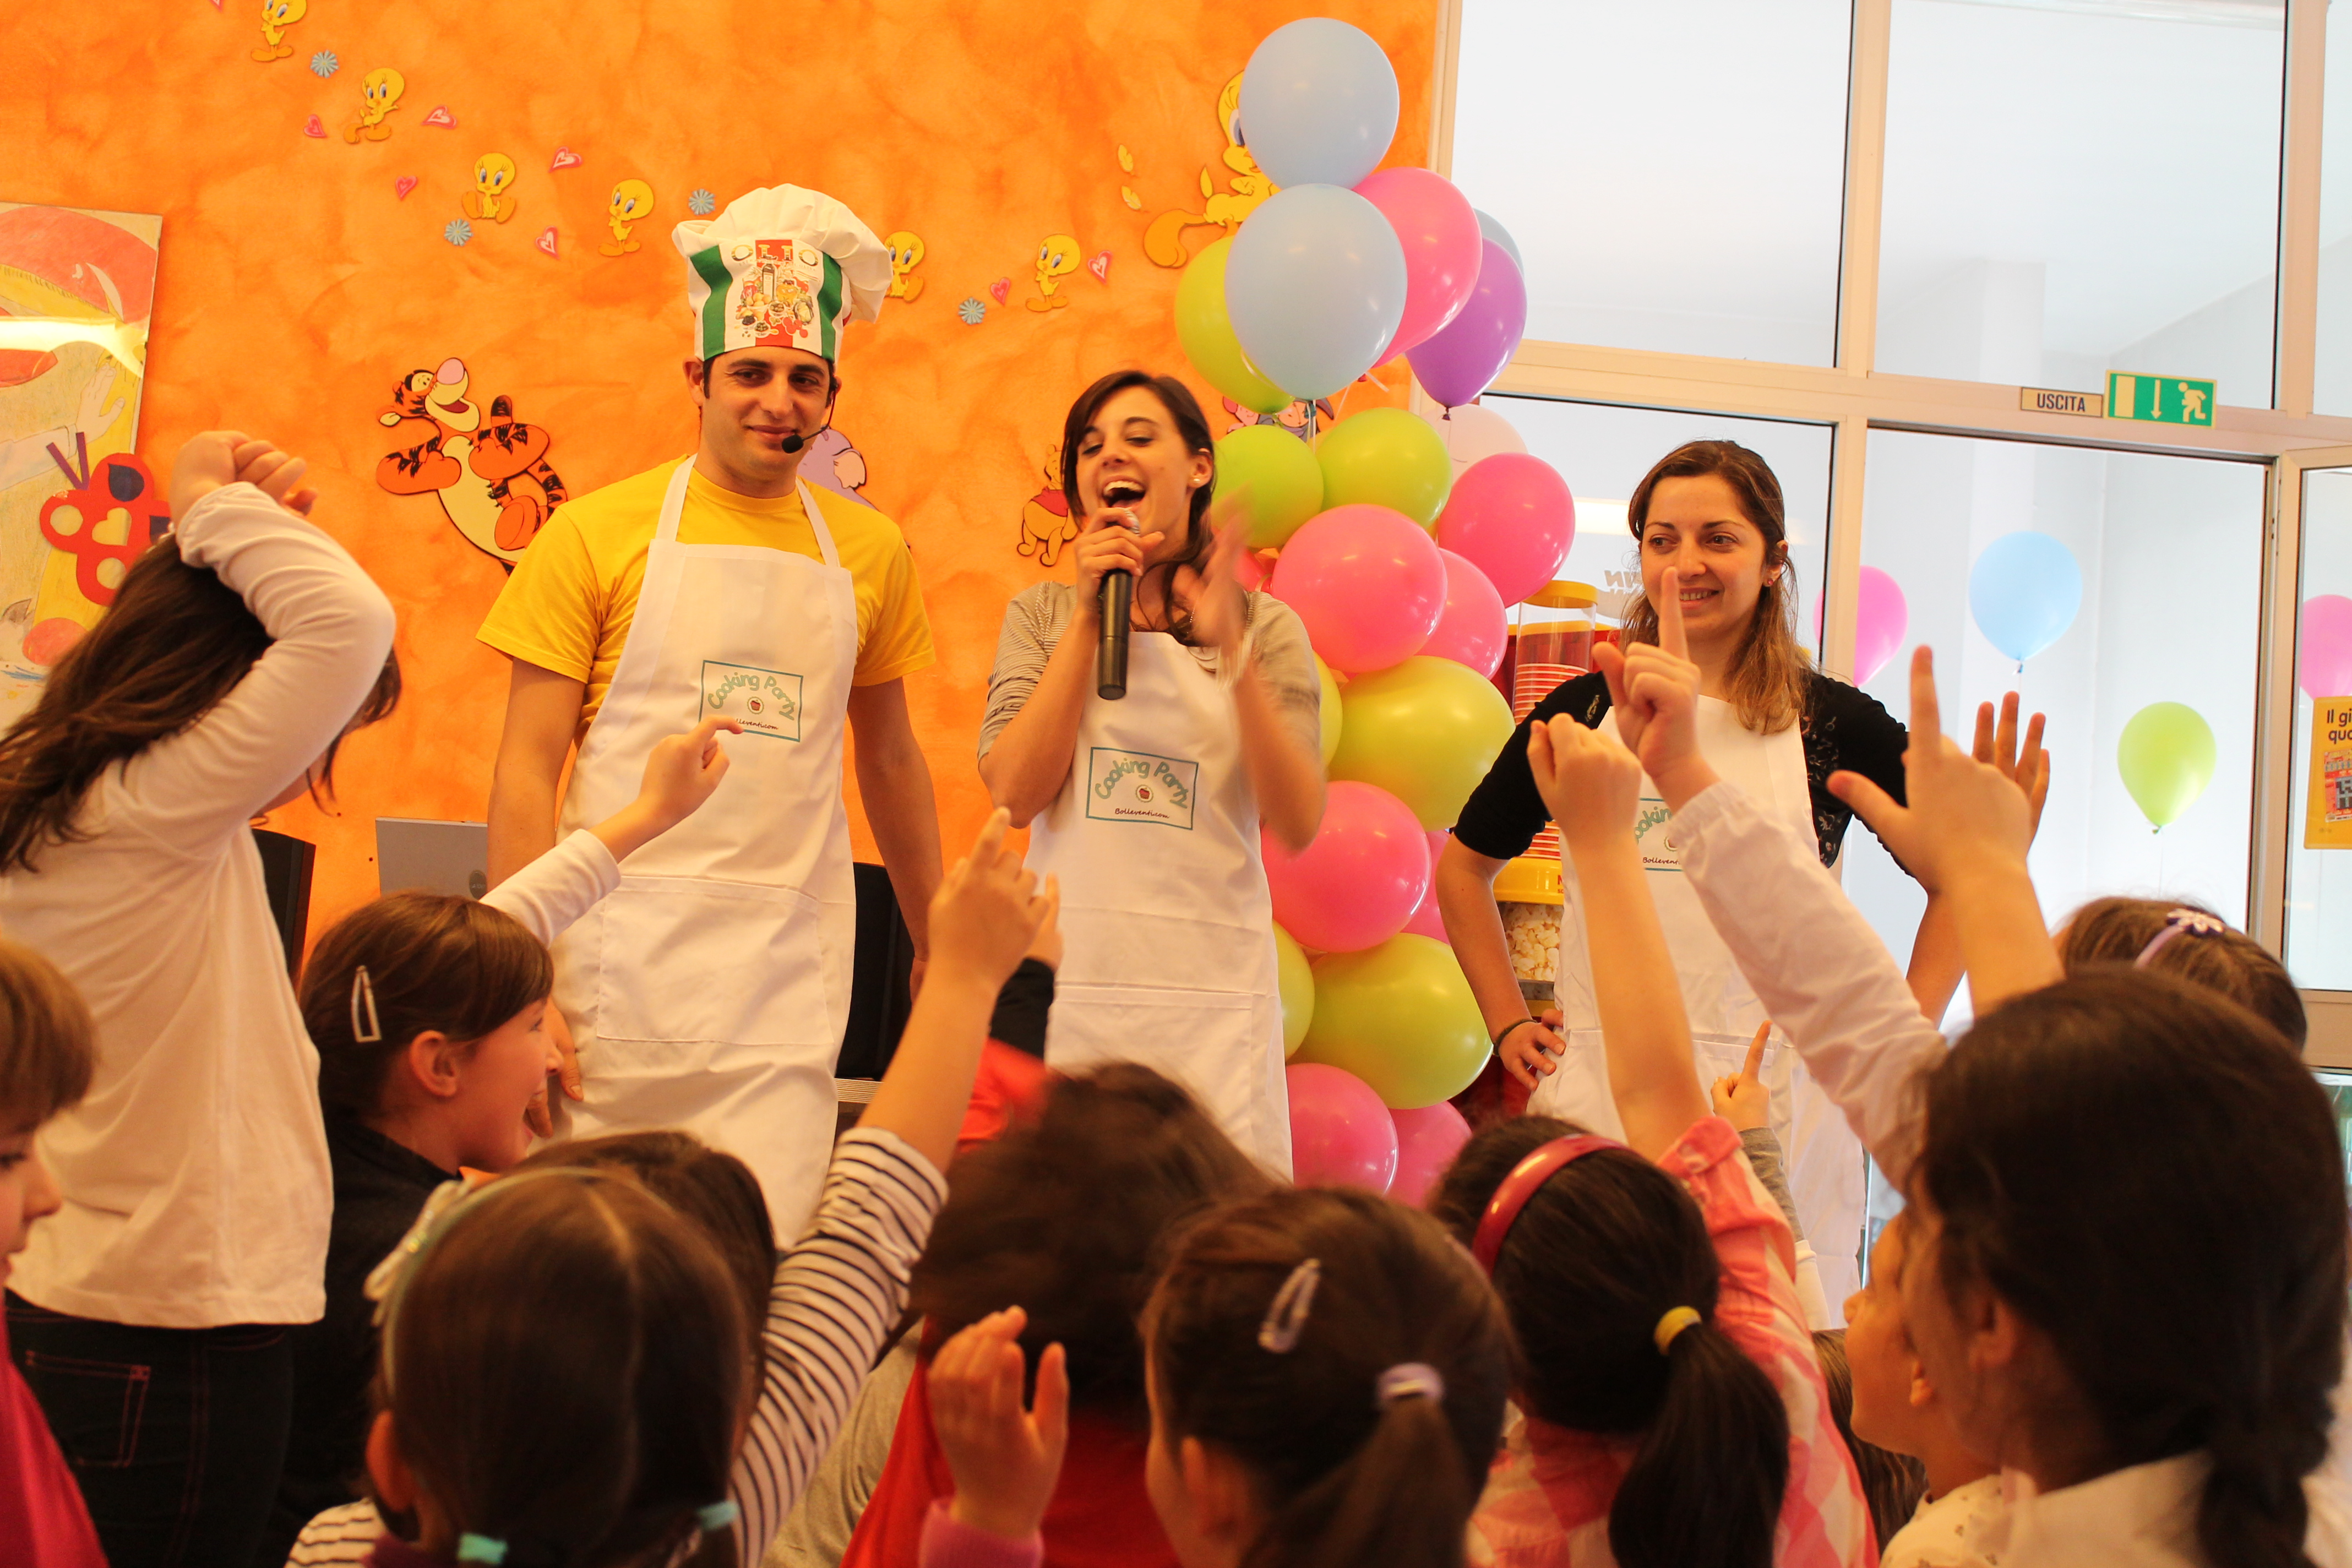 Cooking party: la festa di compleanno con lo chef! ⋆ bolle eventi ...